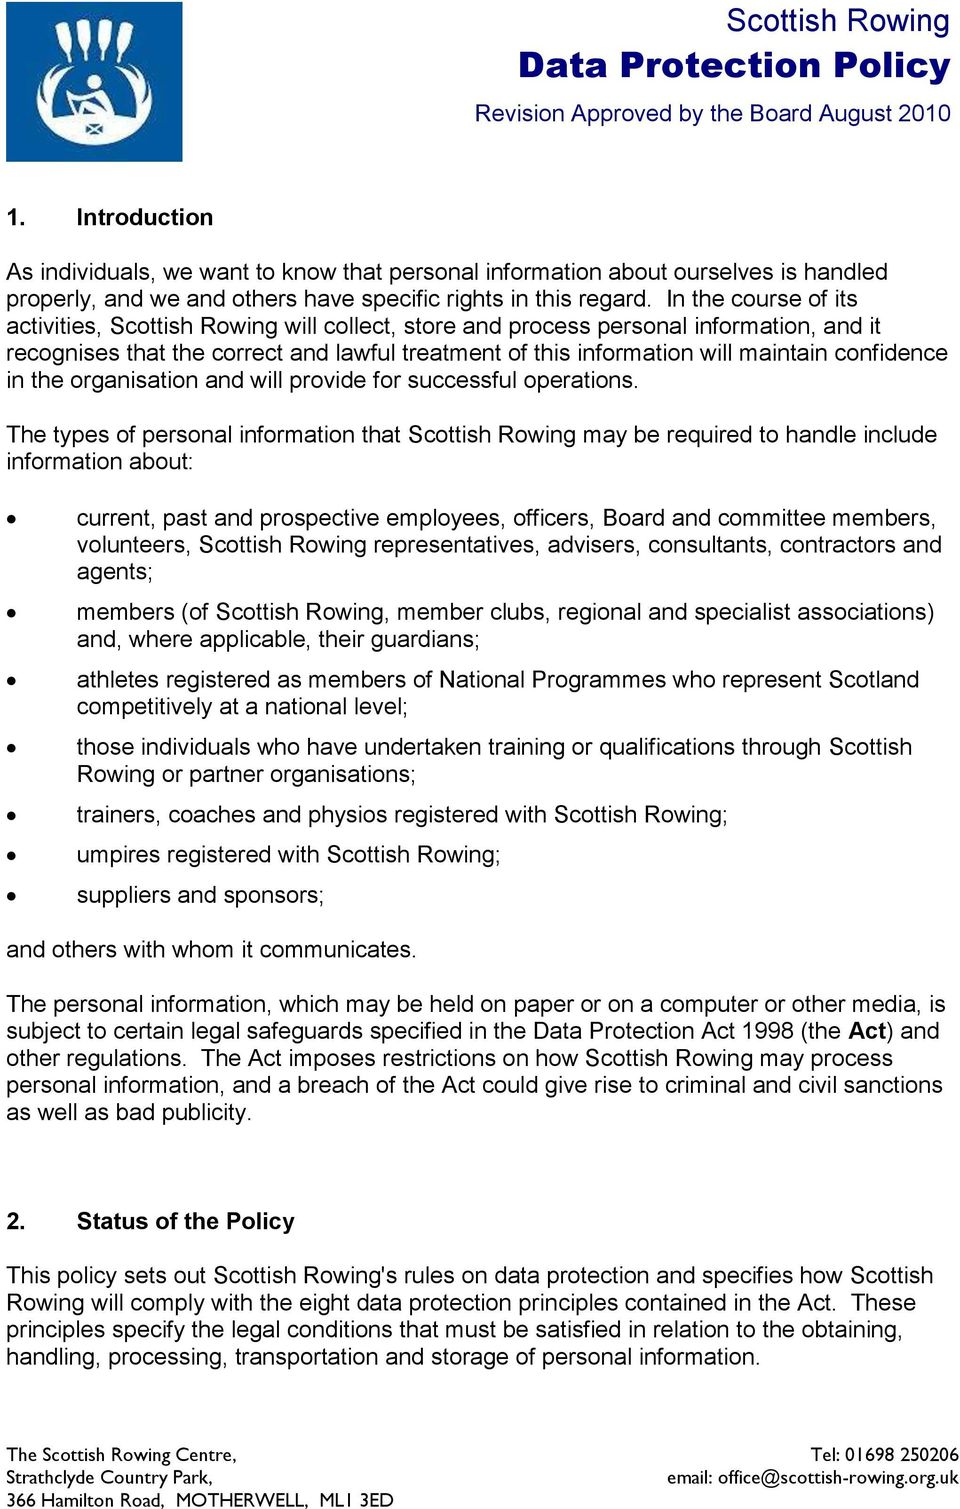 In the course of its activities, Scottish Rowing will collect, store and process personal information, and it recognises that the correct and lawful treatment of this information will maintain